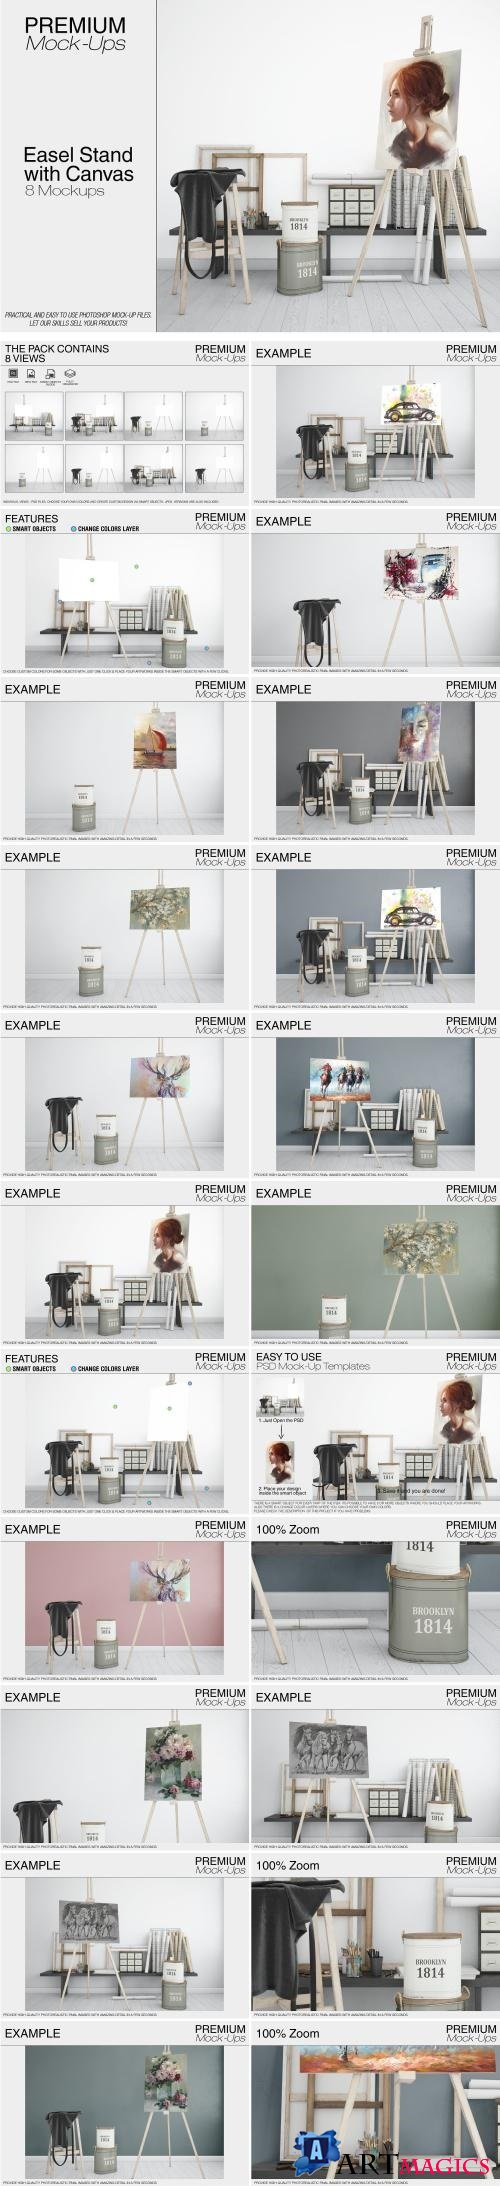 Easel Stand with Canvas - 2134874